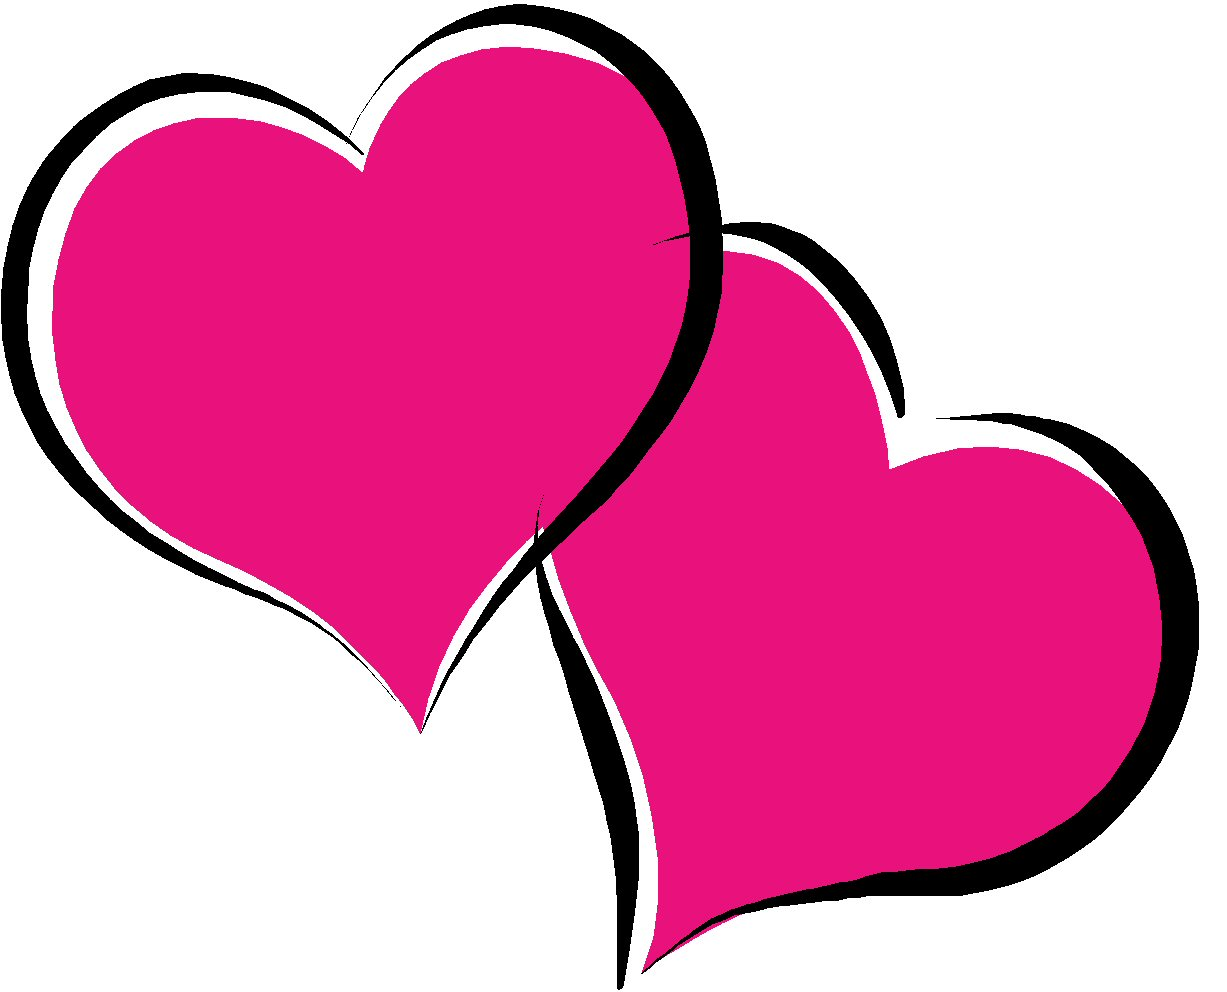 Hearts free images clipartix. Heart clipart clip black and white